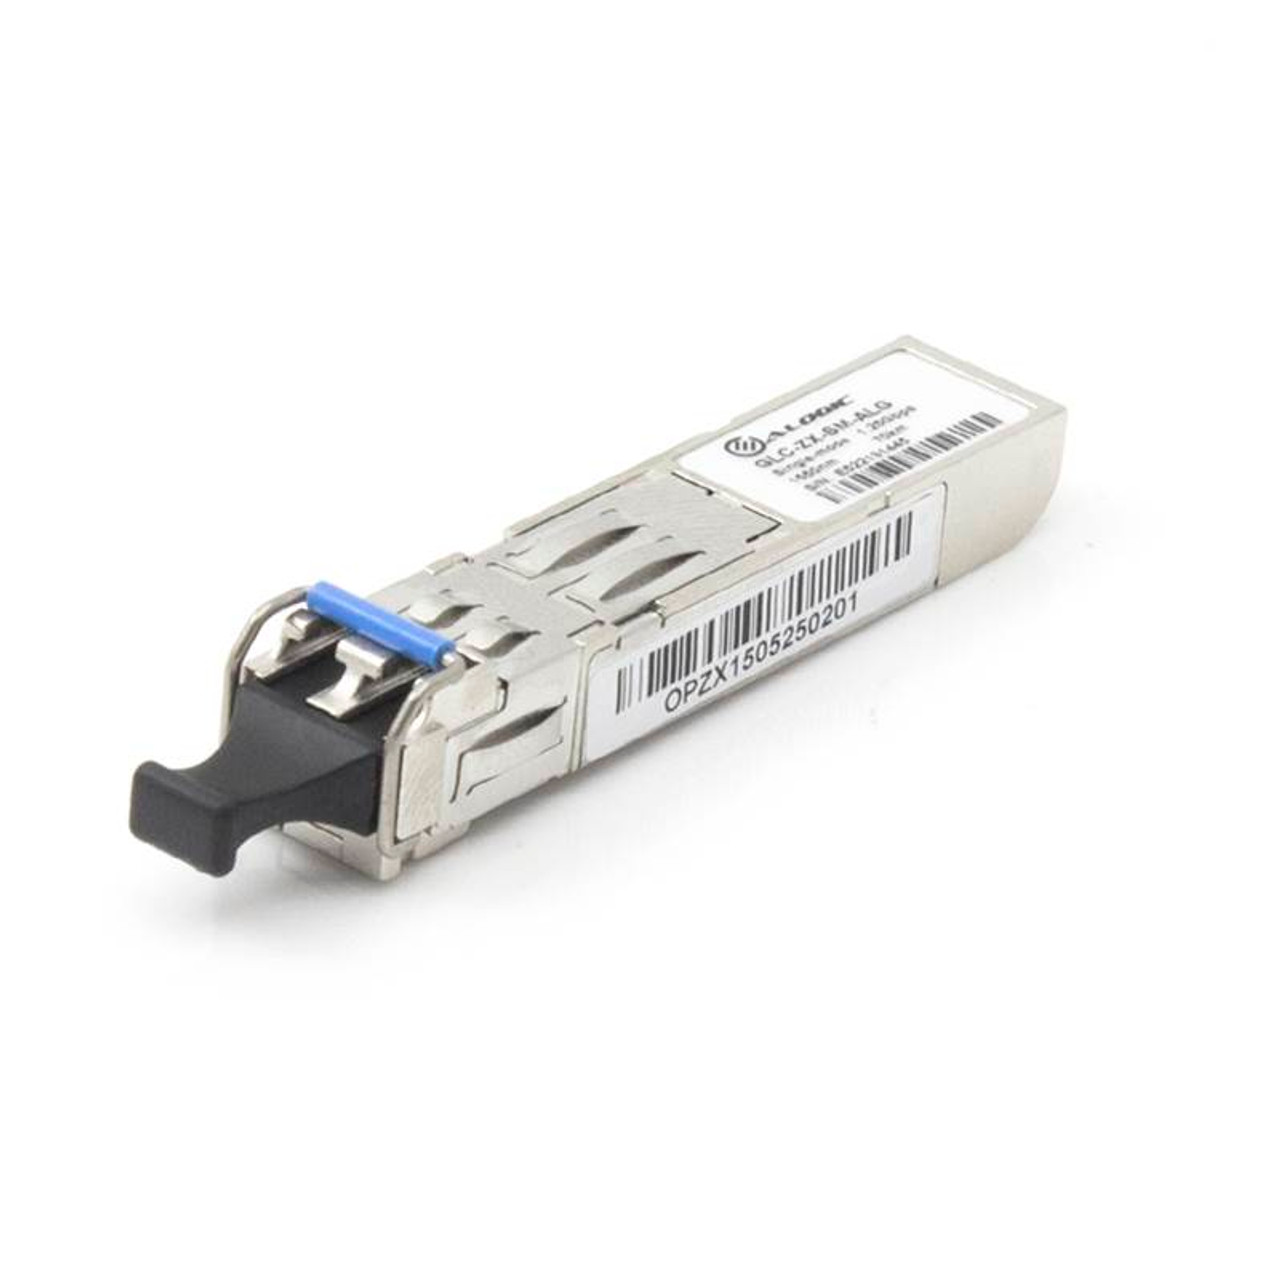 Image for Alogic Cisco GLCZXSM Compatible 1000BaseZX SMF SFP Transceiver Module to 70Km CX Computer Superstore